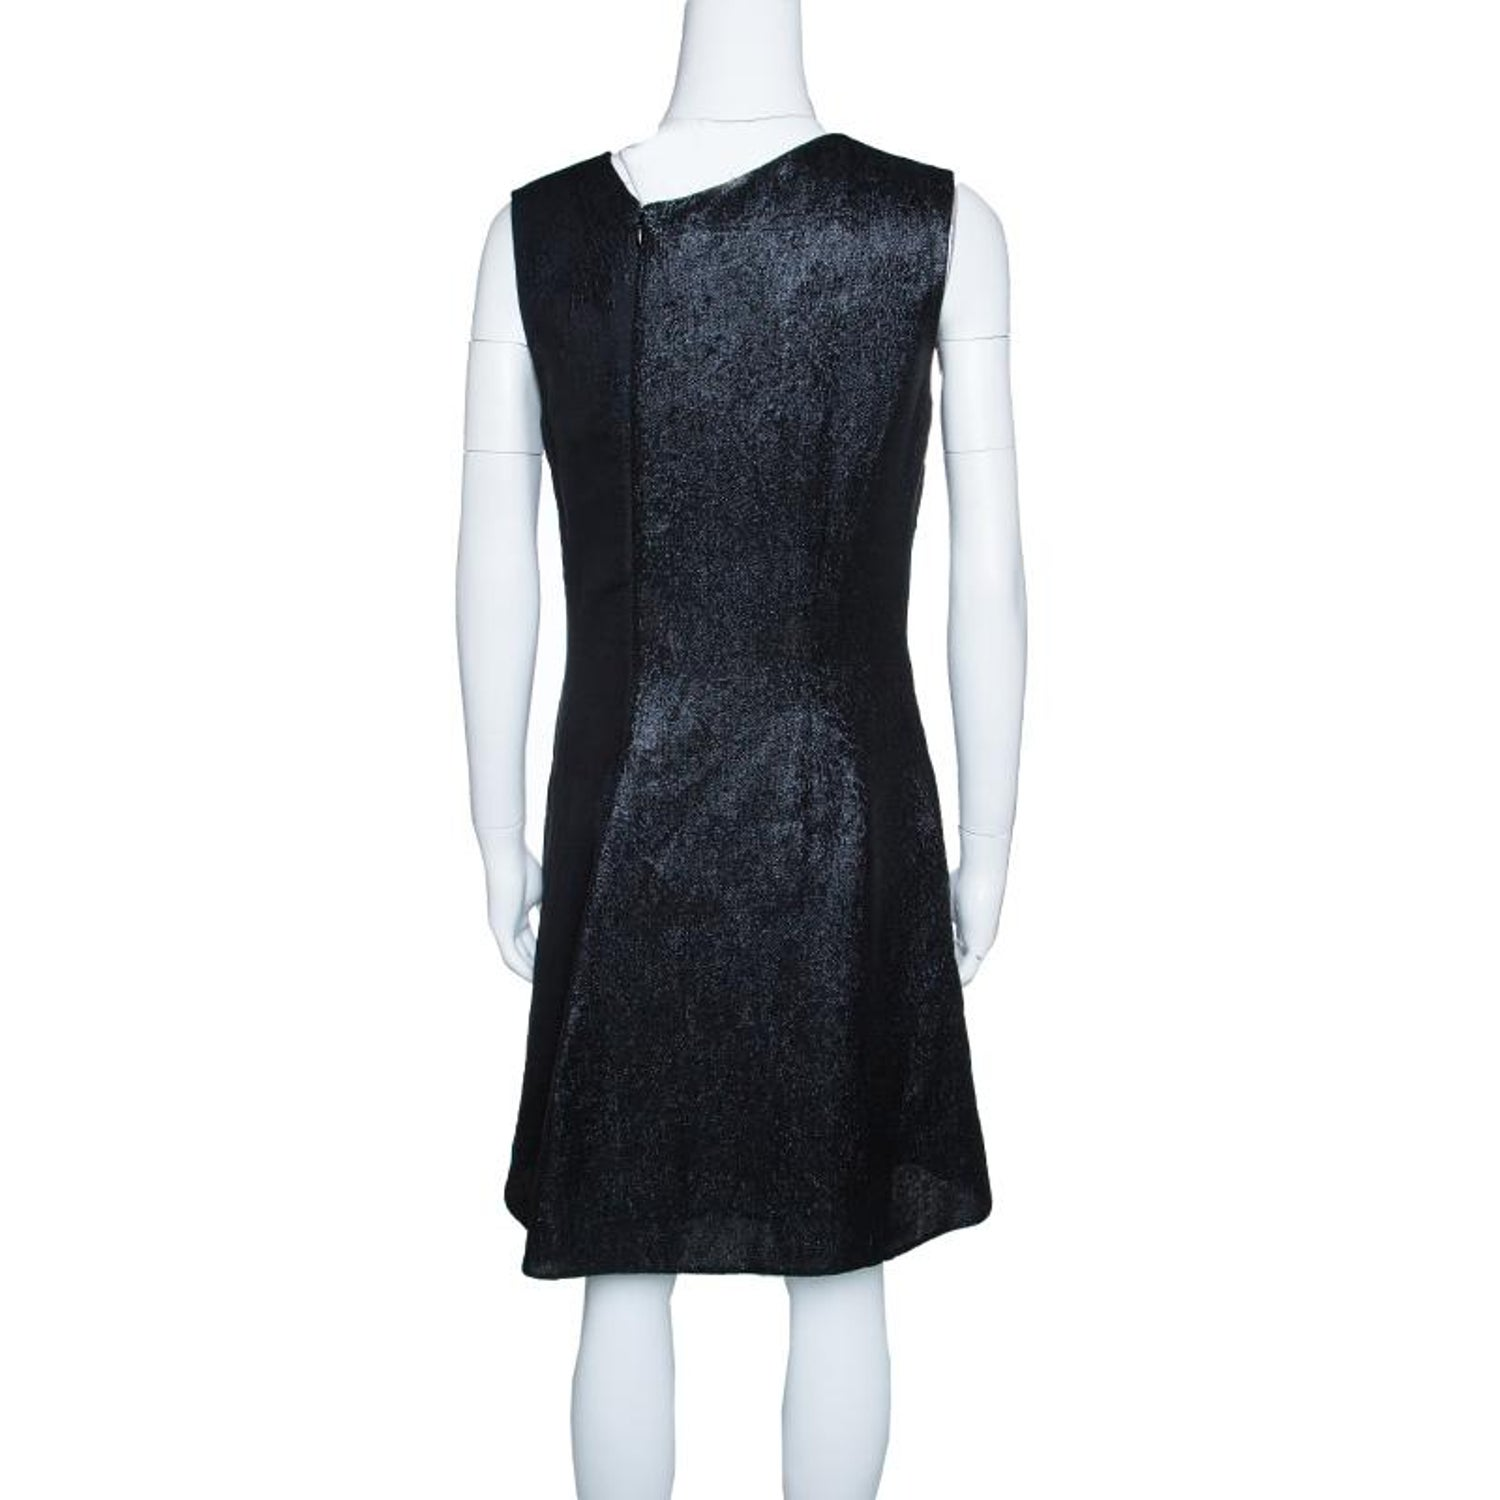 43476a62e06 Stella McCartney Navy Blue Cloque and Metallic Jacquard Sleeveless Anita  Dress M For Sale at 1stdibs